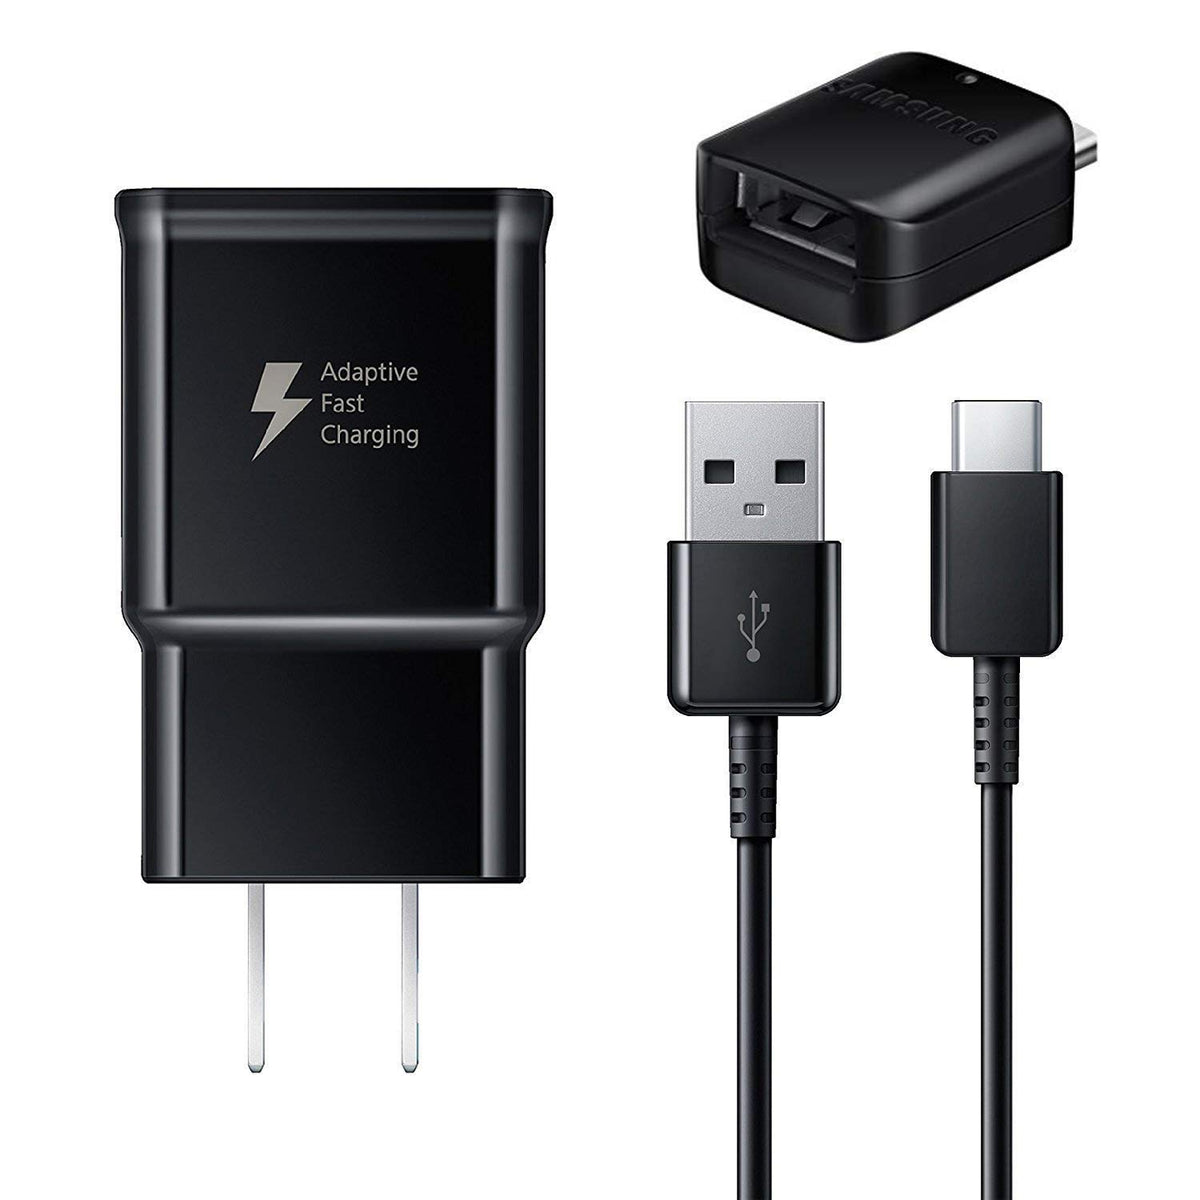 Black Micro USB to OTG Works with Samsung N7100 Direct On-The-Go Connection Kit and Cable Adapter!